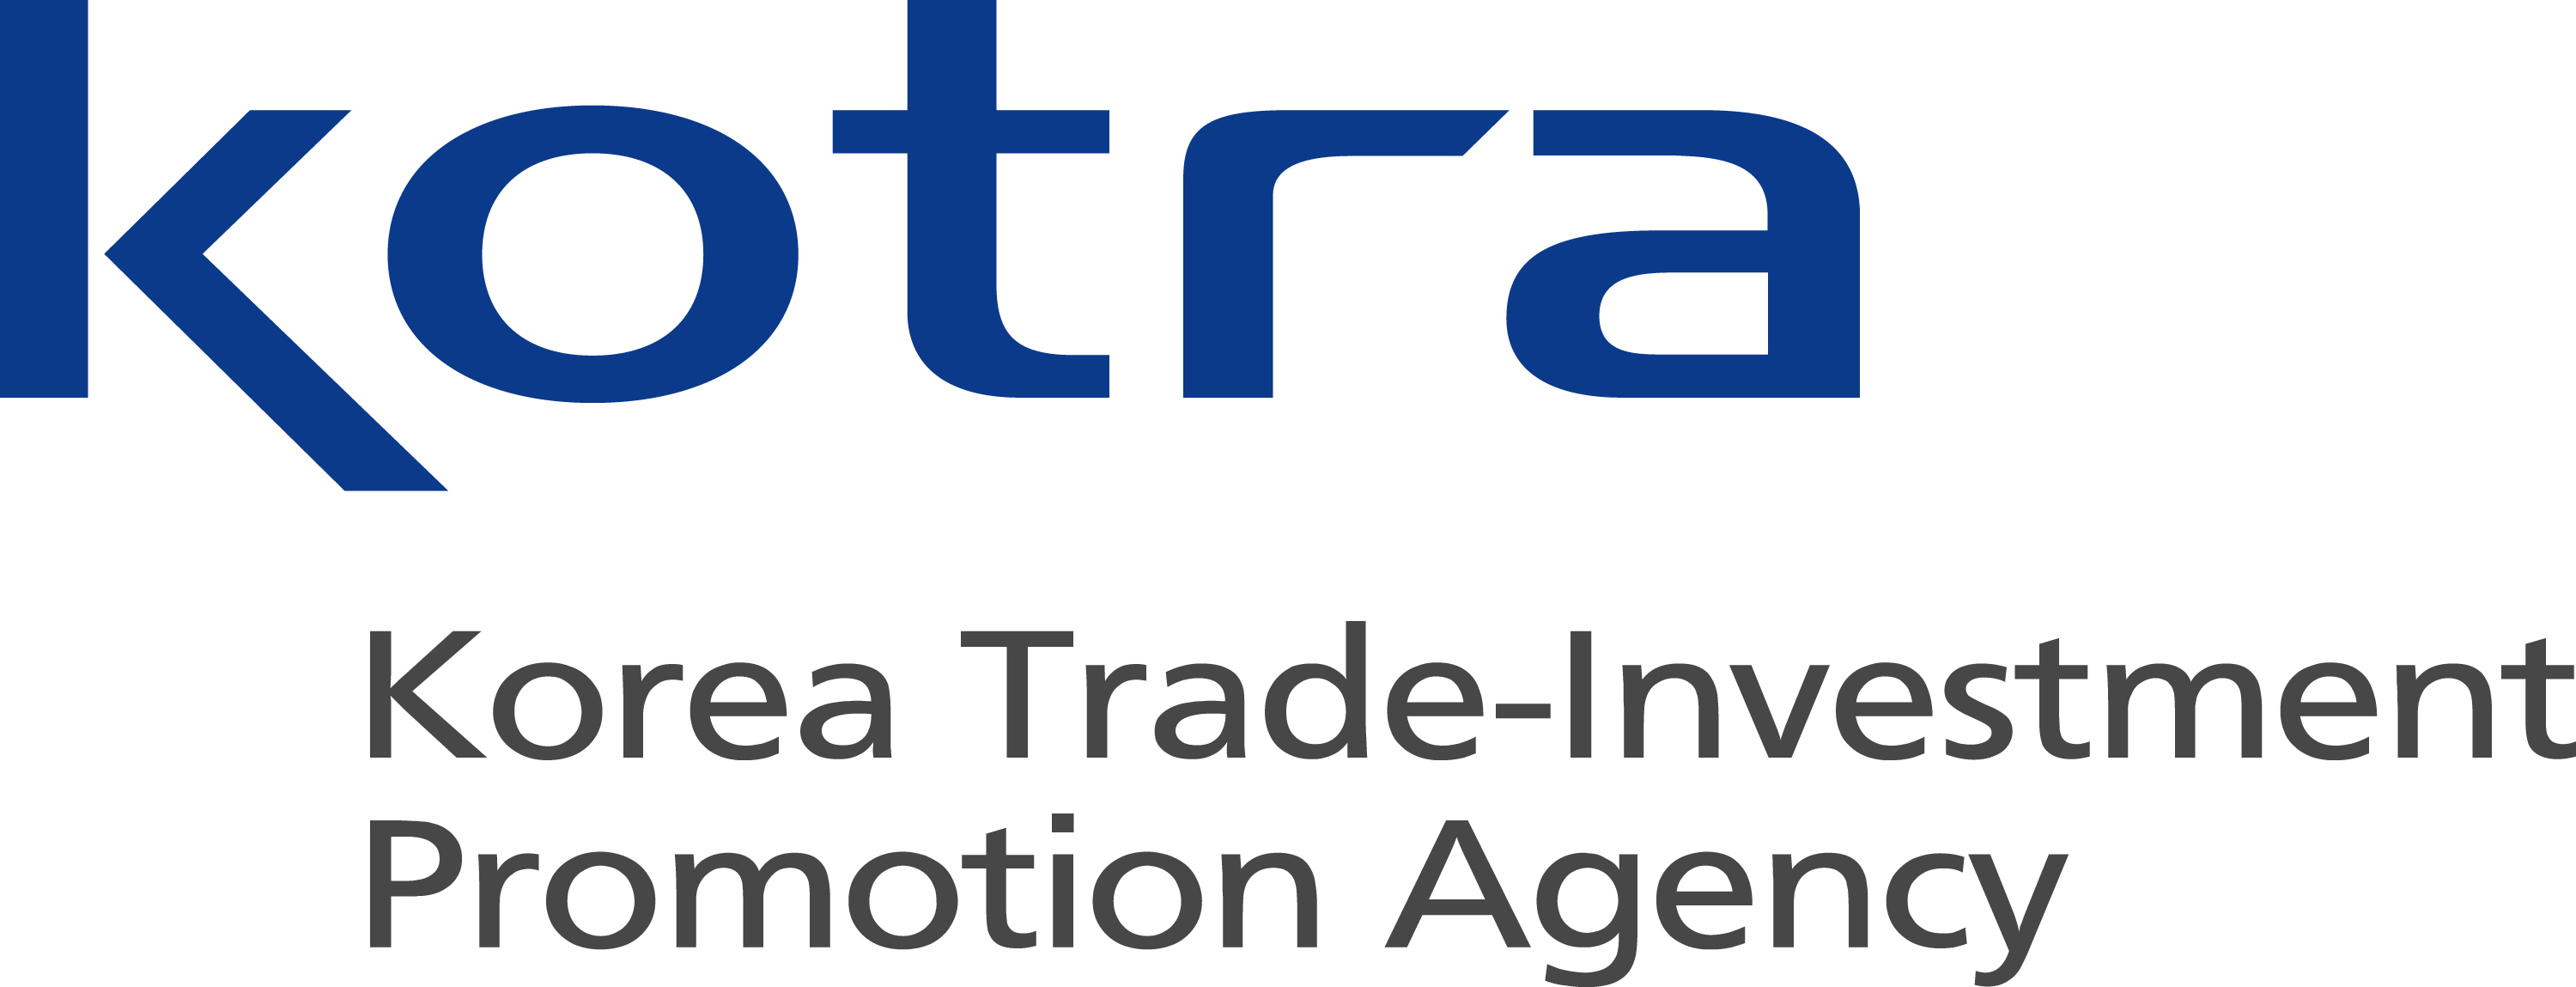 Logo_of_KOTRA_(Korea_Trade-Investment_Promotion_Agency).jpg